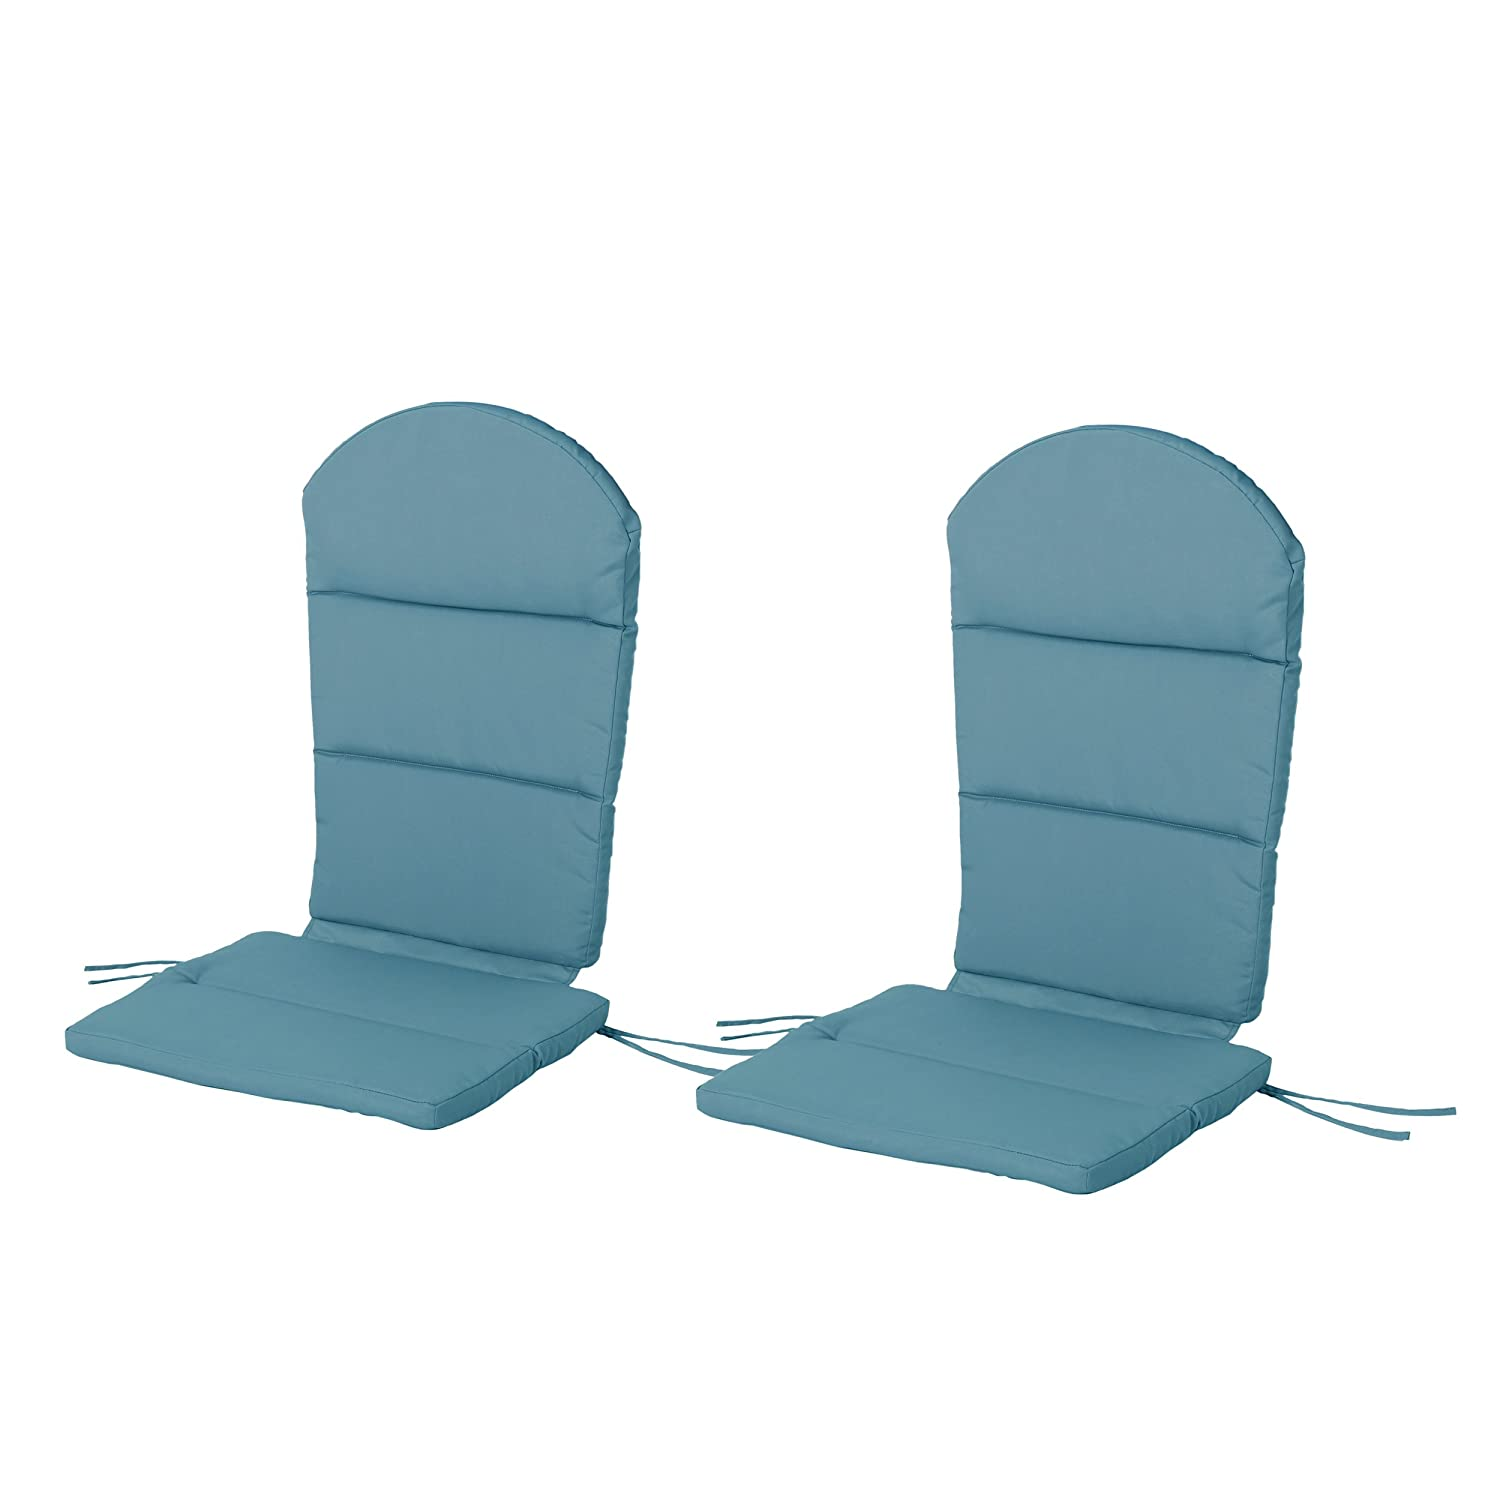 Christopher Knight Home 304635 Terry Outdoor Adirondack Chair Cushion Set of 2 , Dark Teal